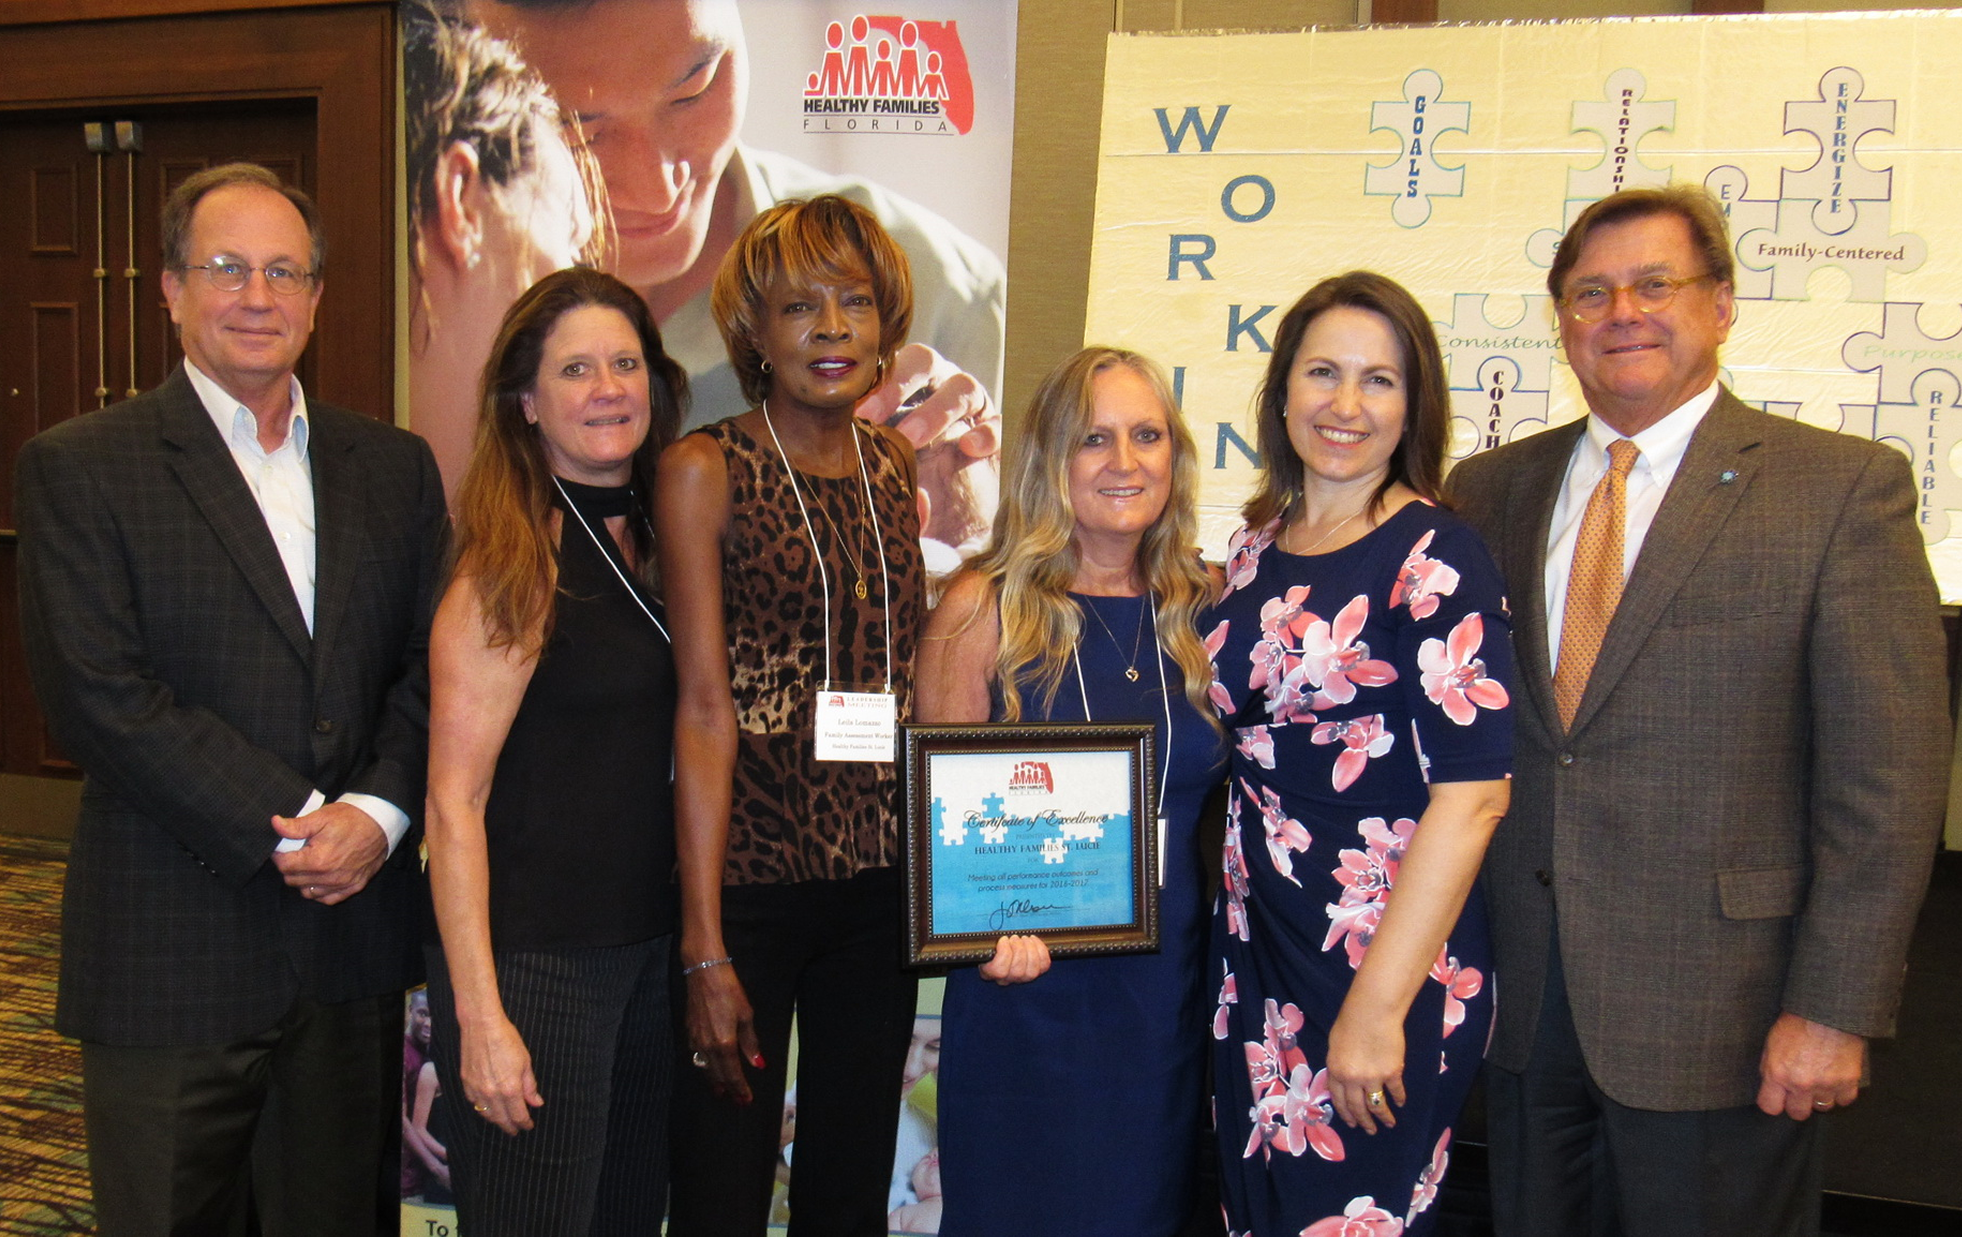 HF St. Lucie Staff Receive Award